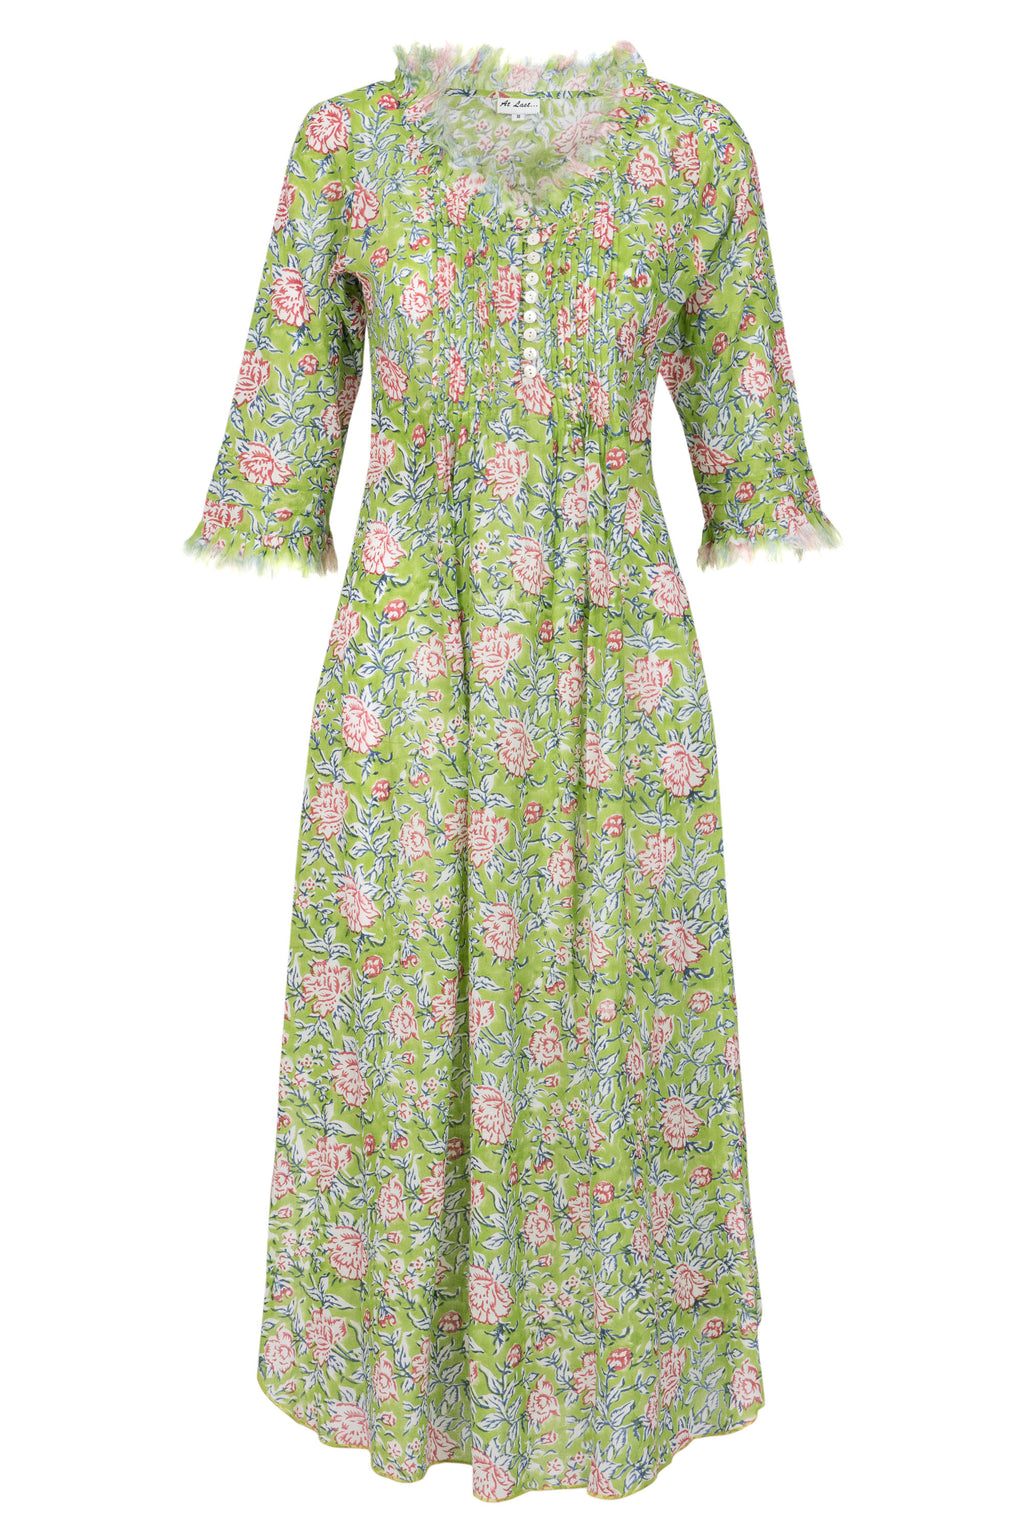 (COMING SOON) Annabel Maxi Dress - Green Flower 2019-118